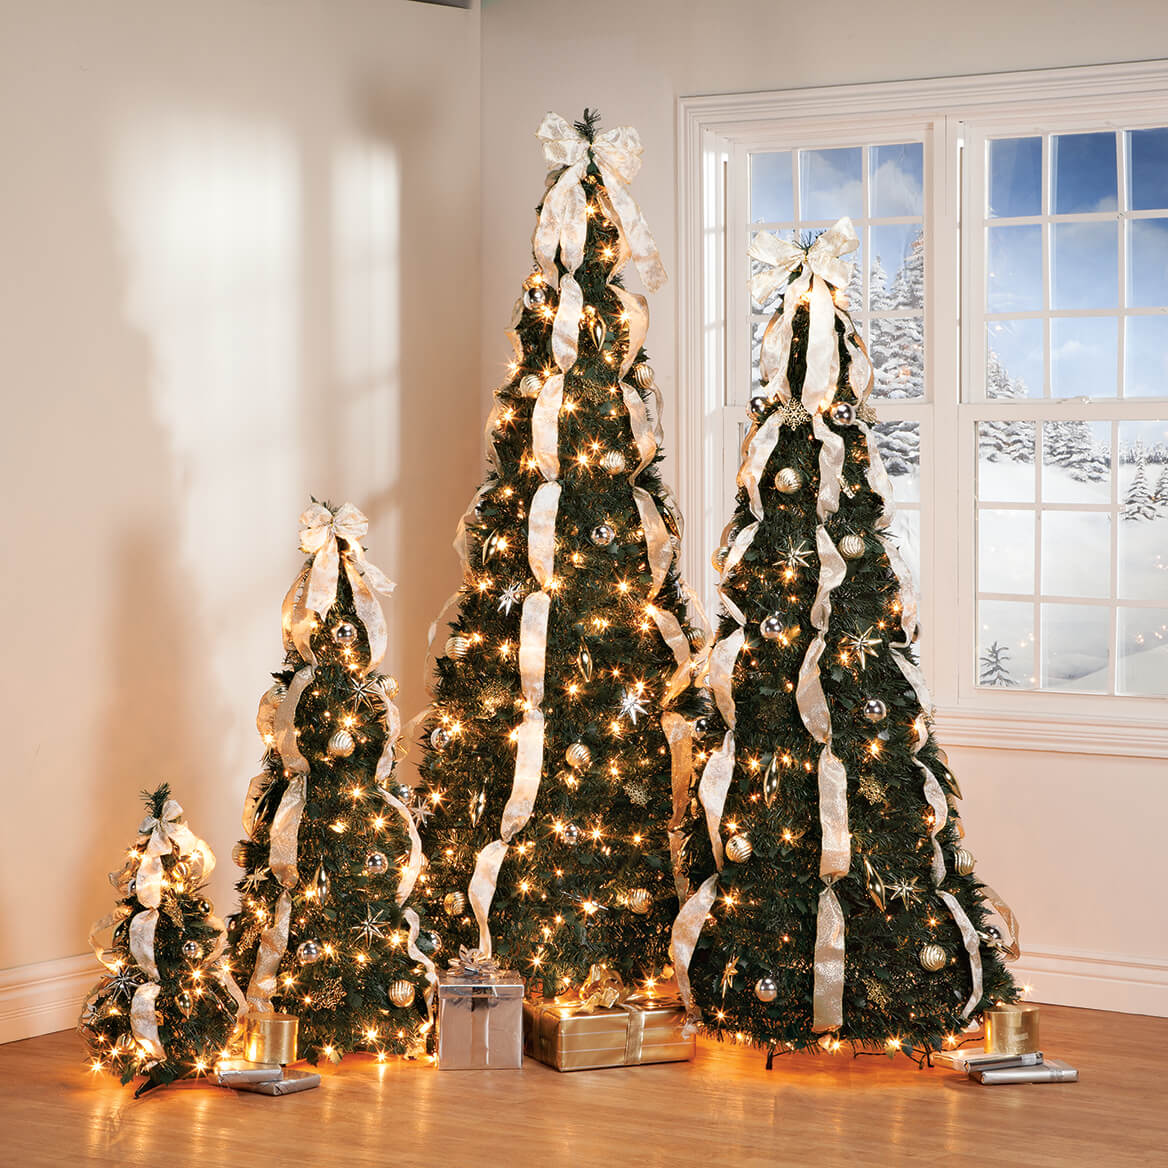 6' Silver & Gold Pull-Up Christmas Tree by Holiday Peak, Pre-Lit and Fully 842536178750 | eBay